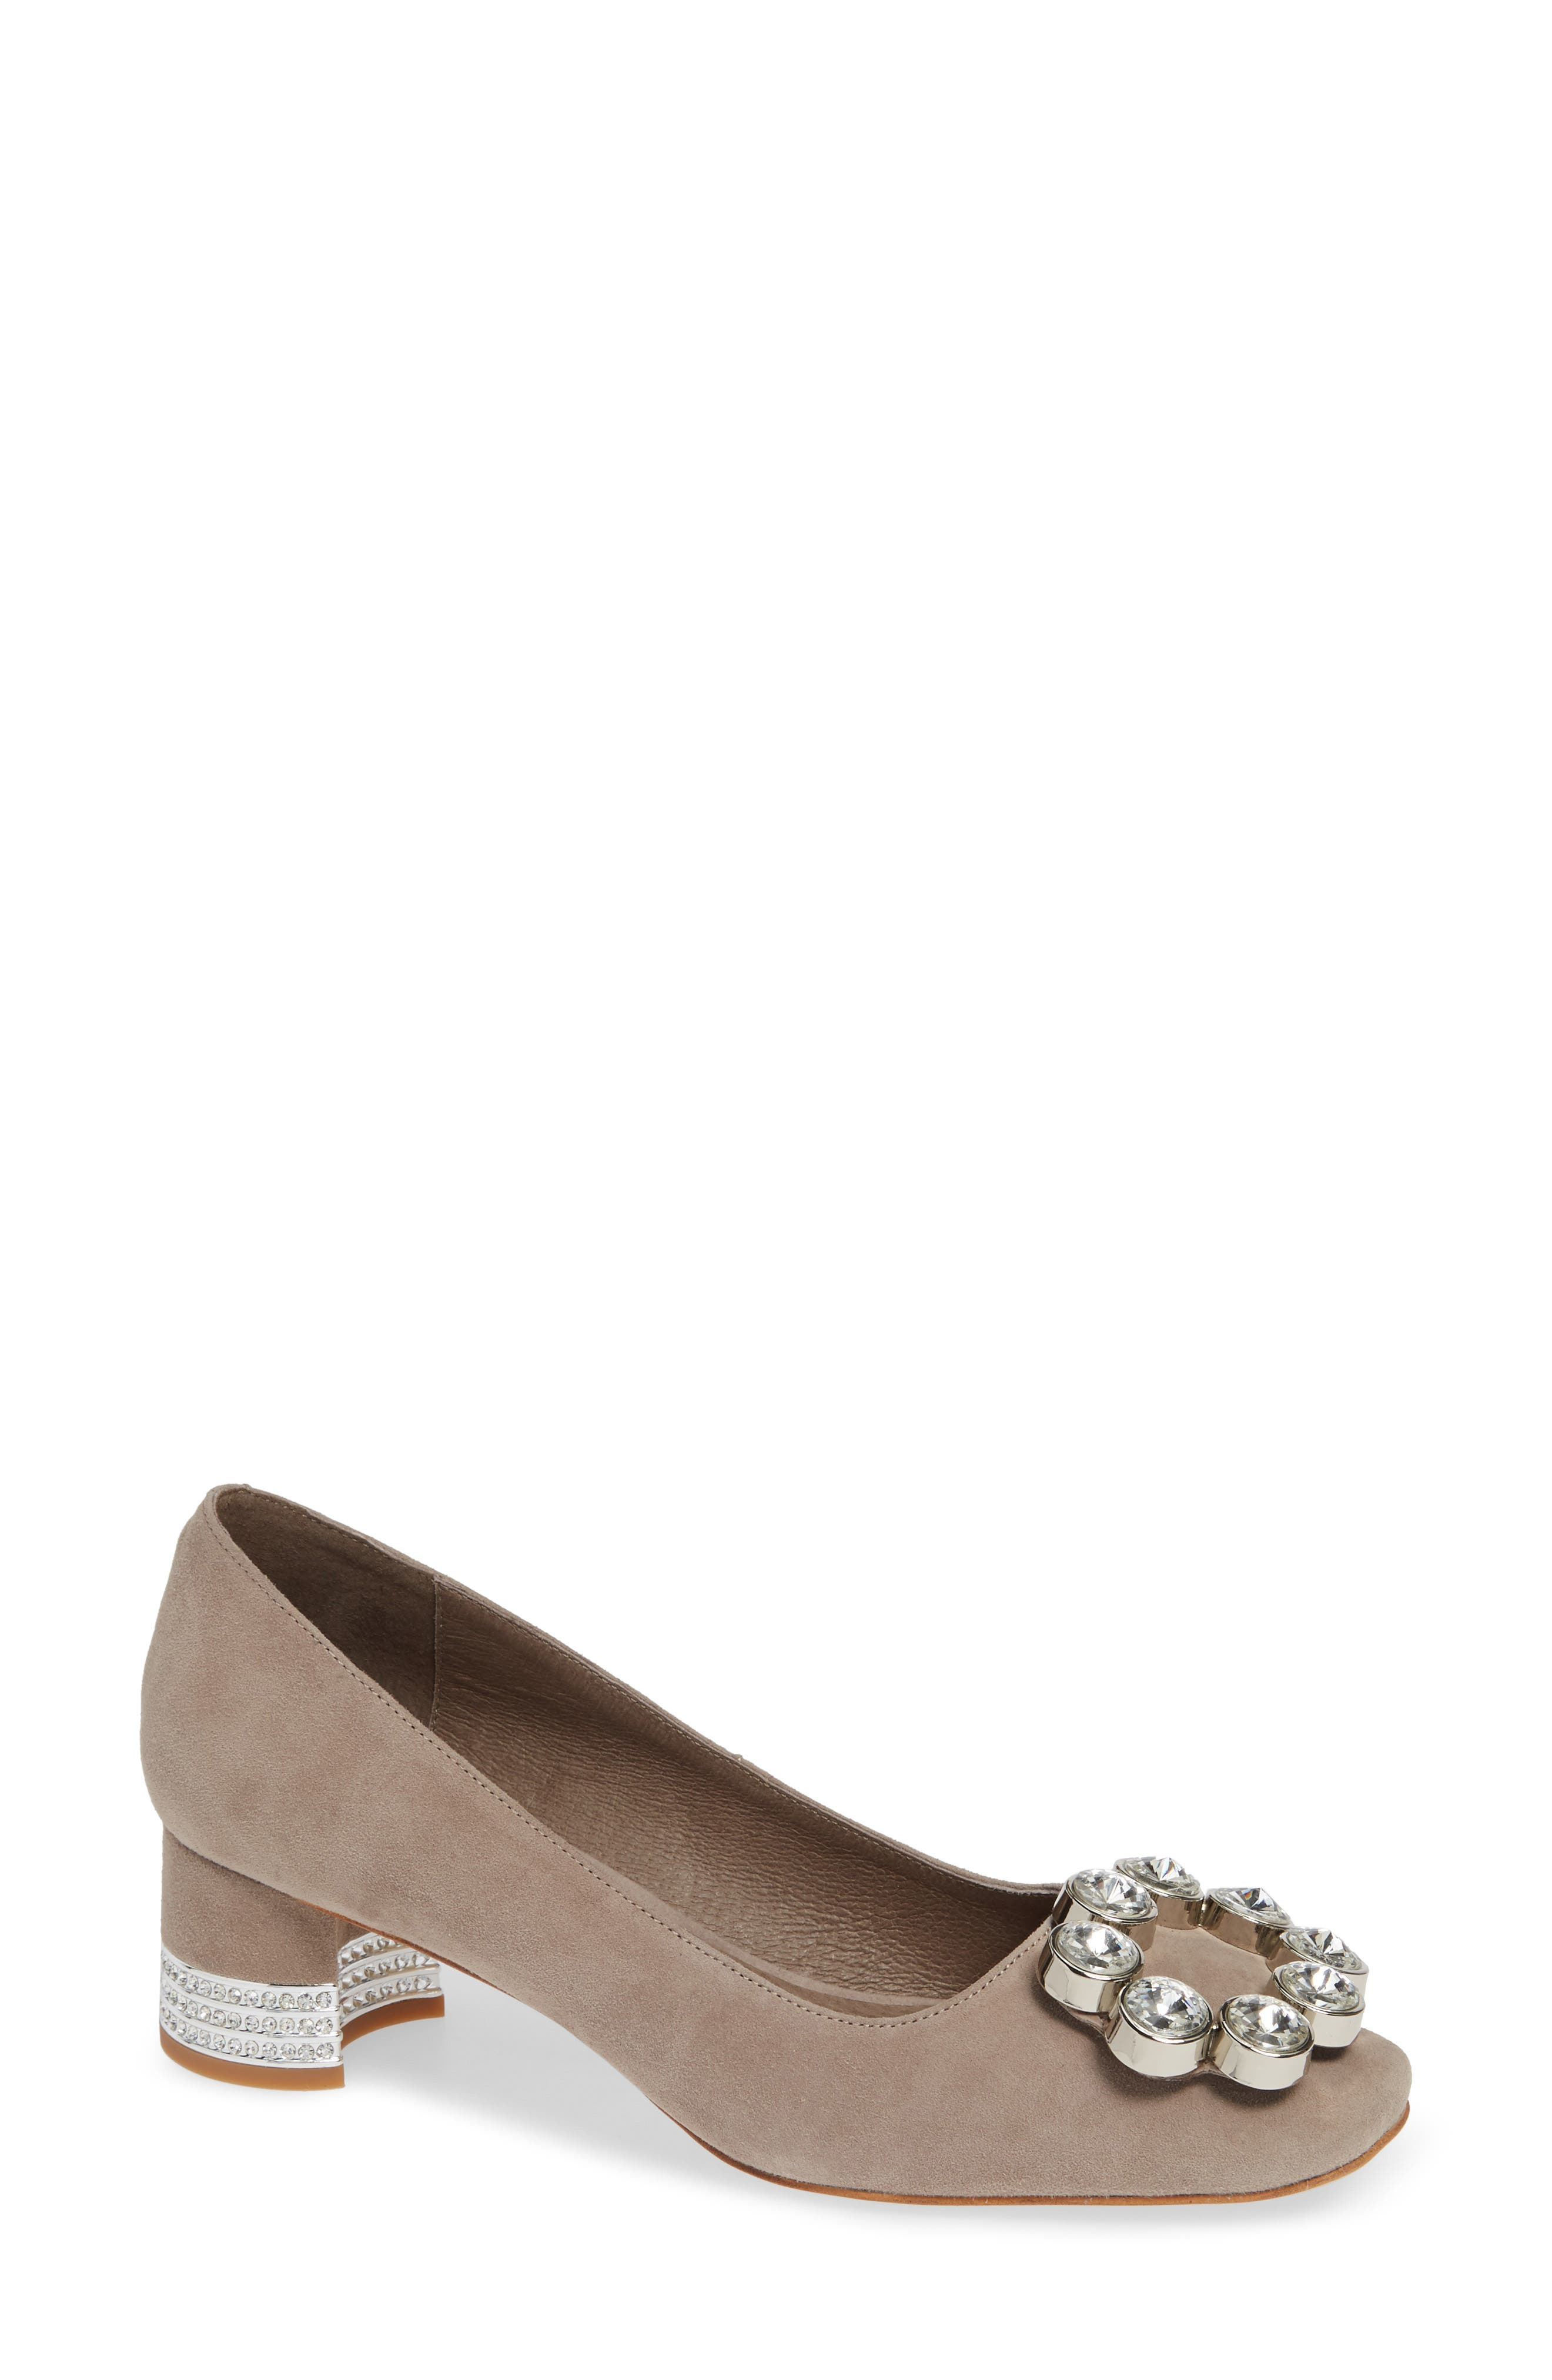 JEFFREY CAMPBELL Carys Pump, Main, color, TAUPE SUEDE